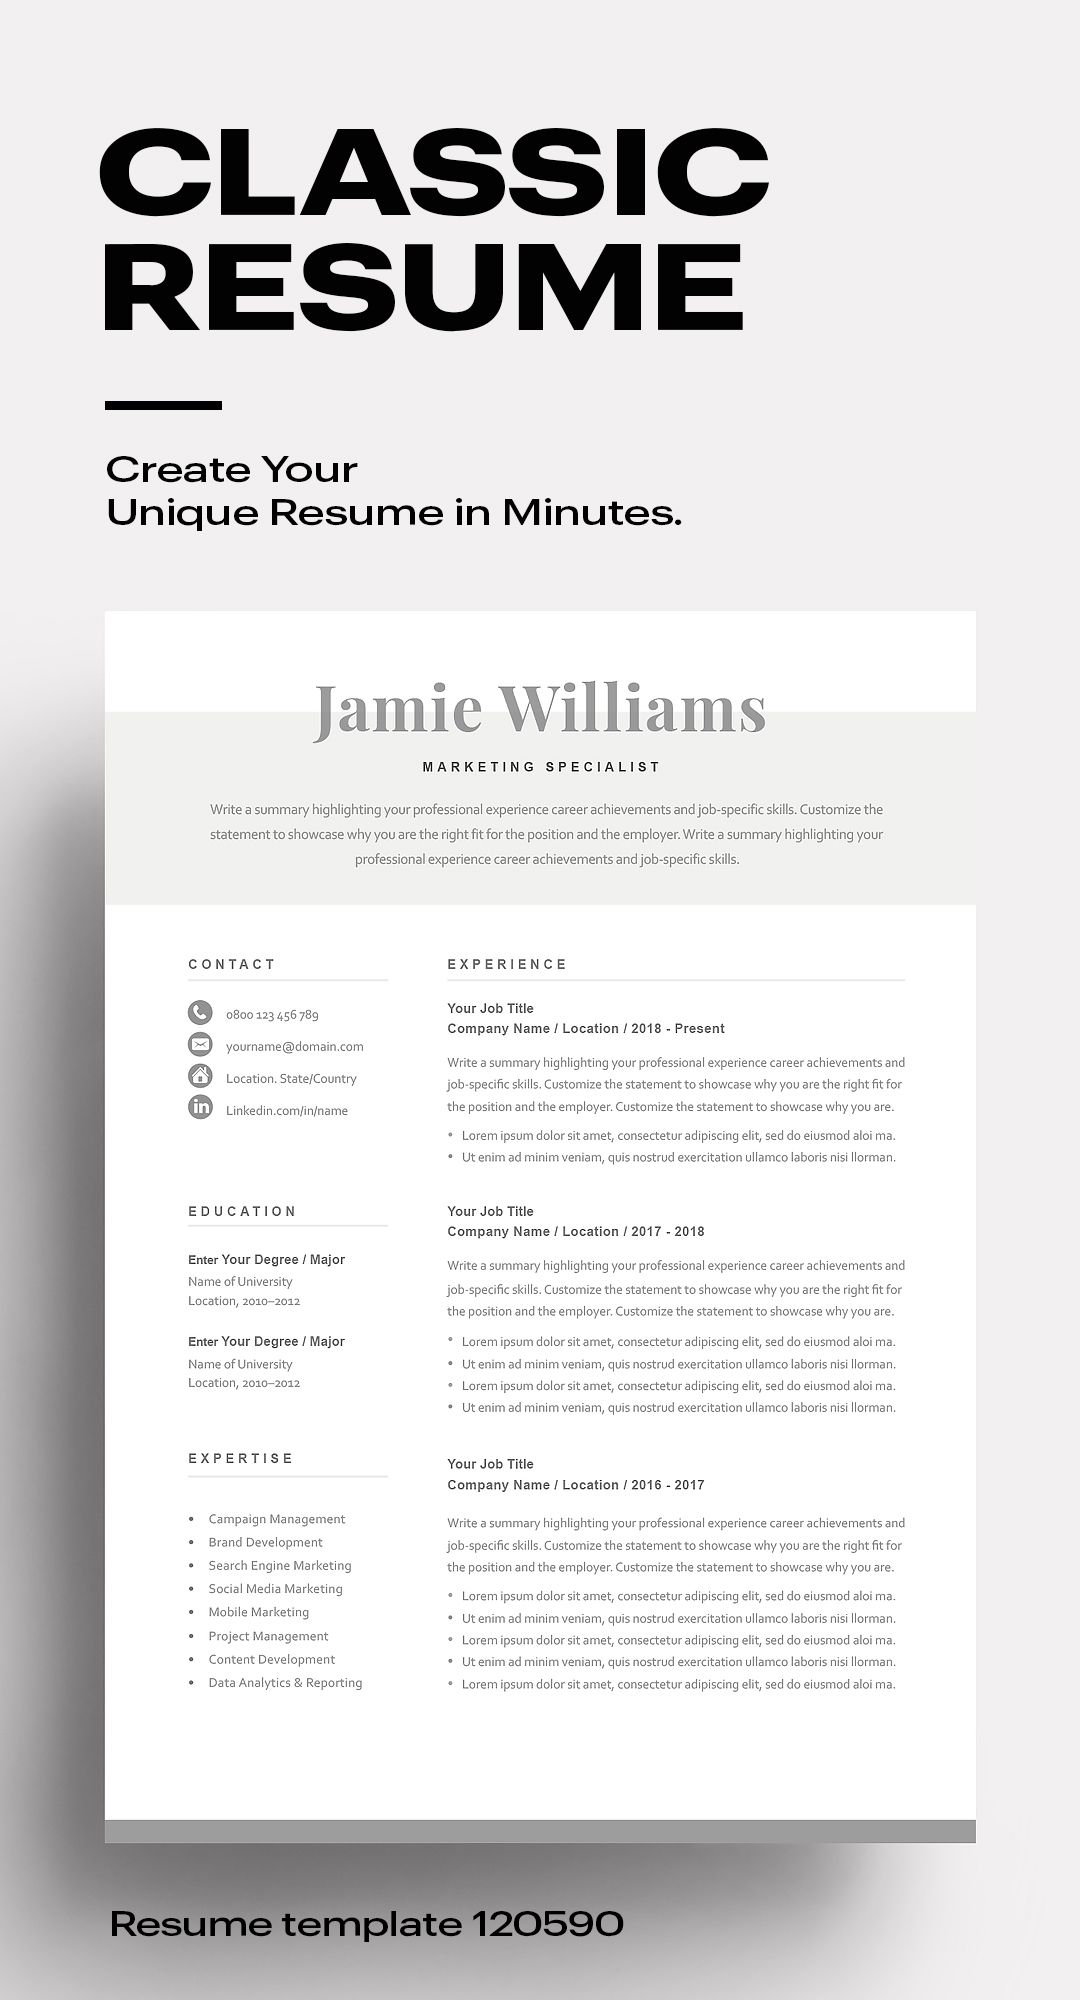 Classic Resume Template 120590 (grey) in 2020 Resume